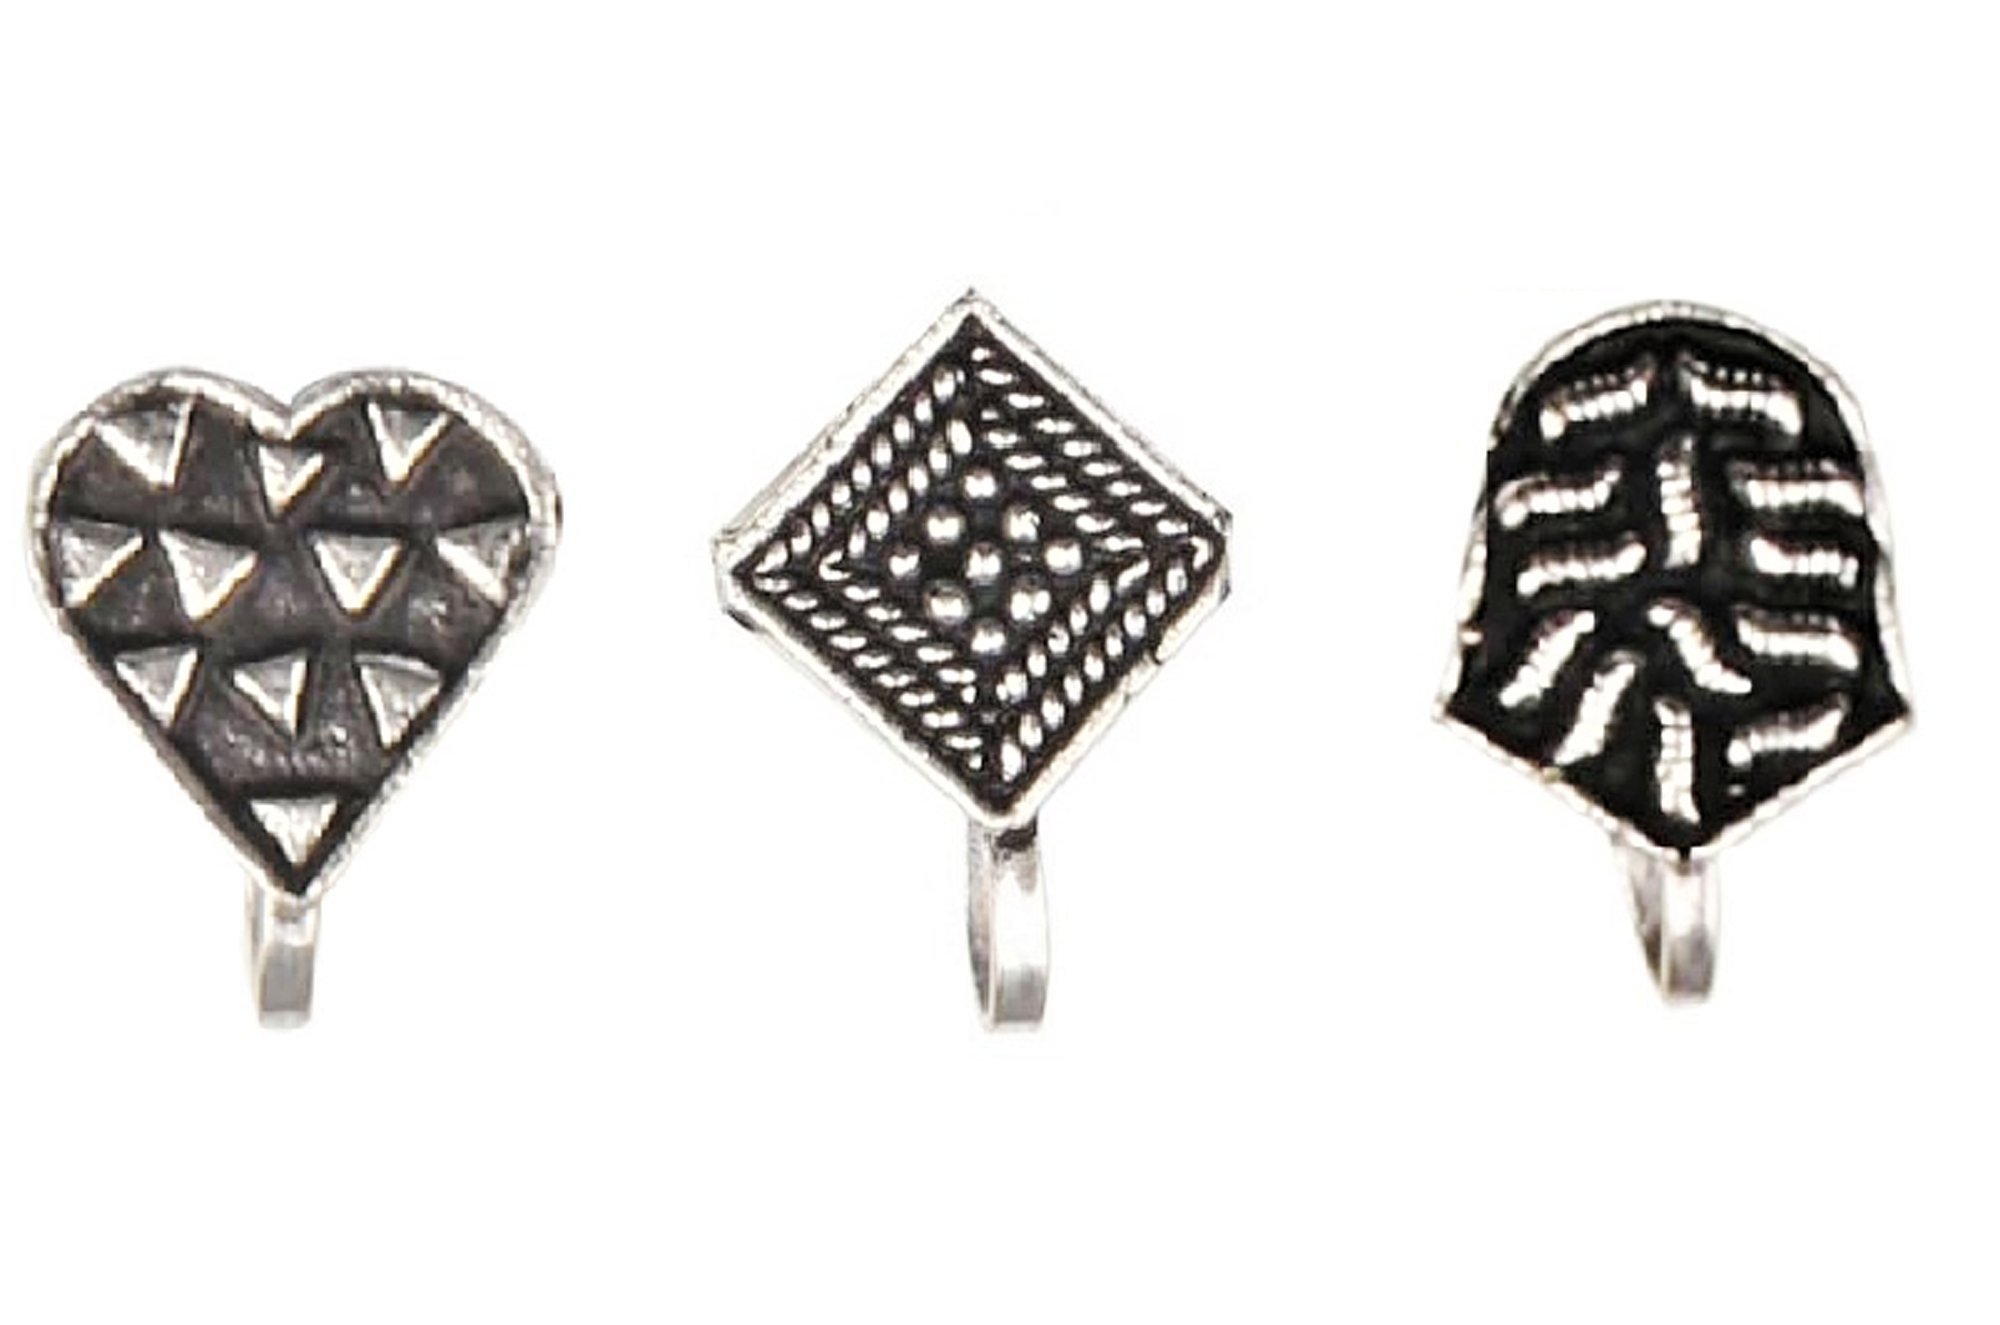 Sansar India Oxidized Bollywood Indian Press Nose Pins Jewelry for Girls and Women (Pack of 3)